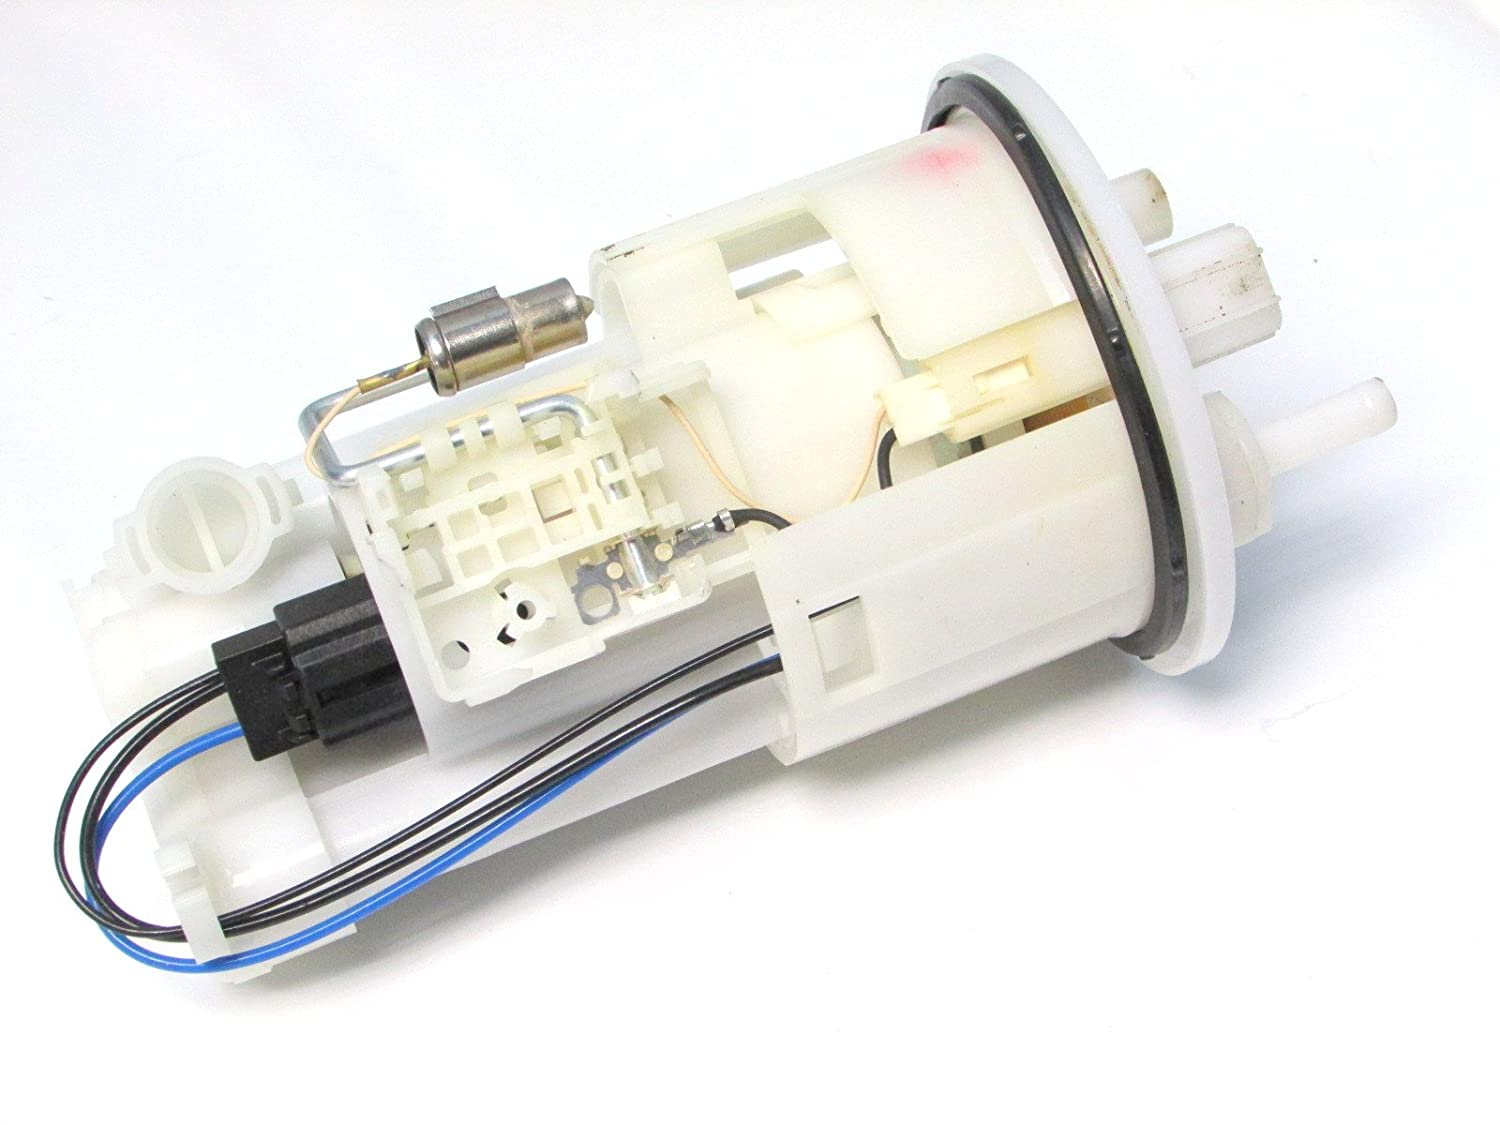 Yamaha 5PW-13907-01-00 Fuel Pump Complete; New # 5PW-13907-02-00 Made by Yamaha